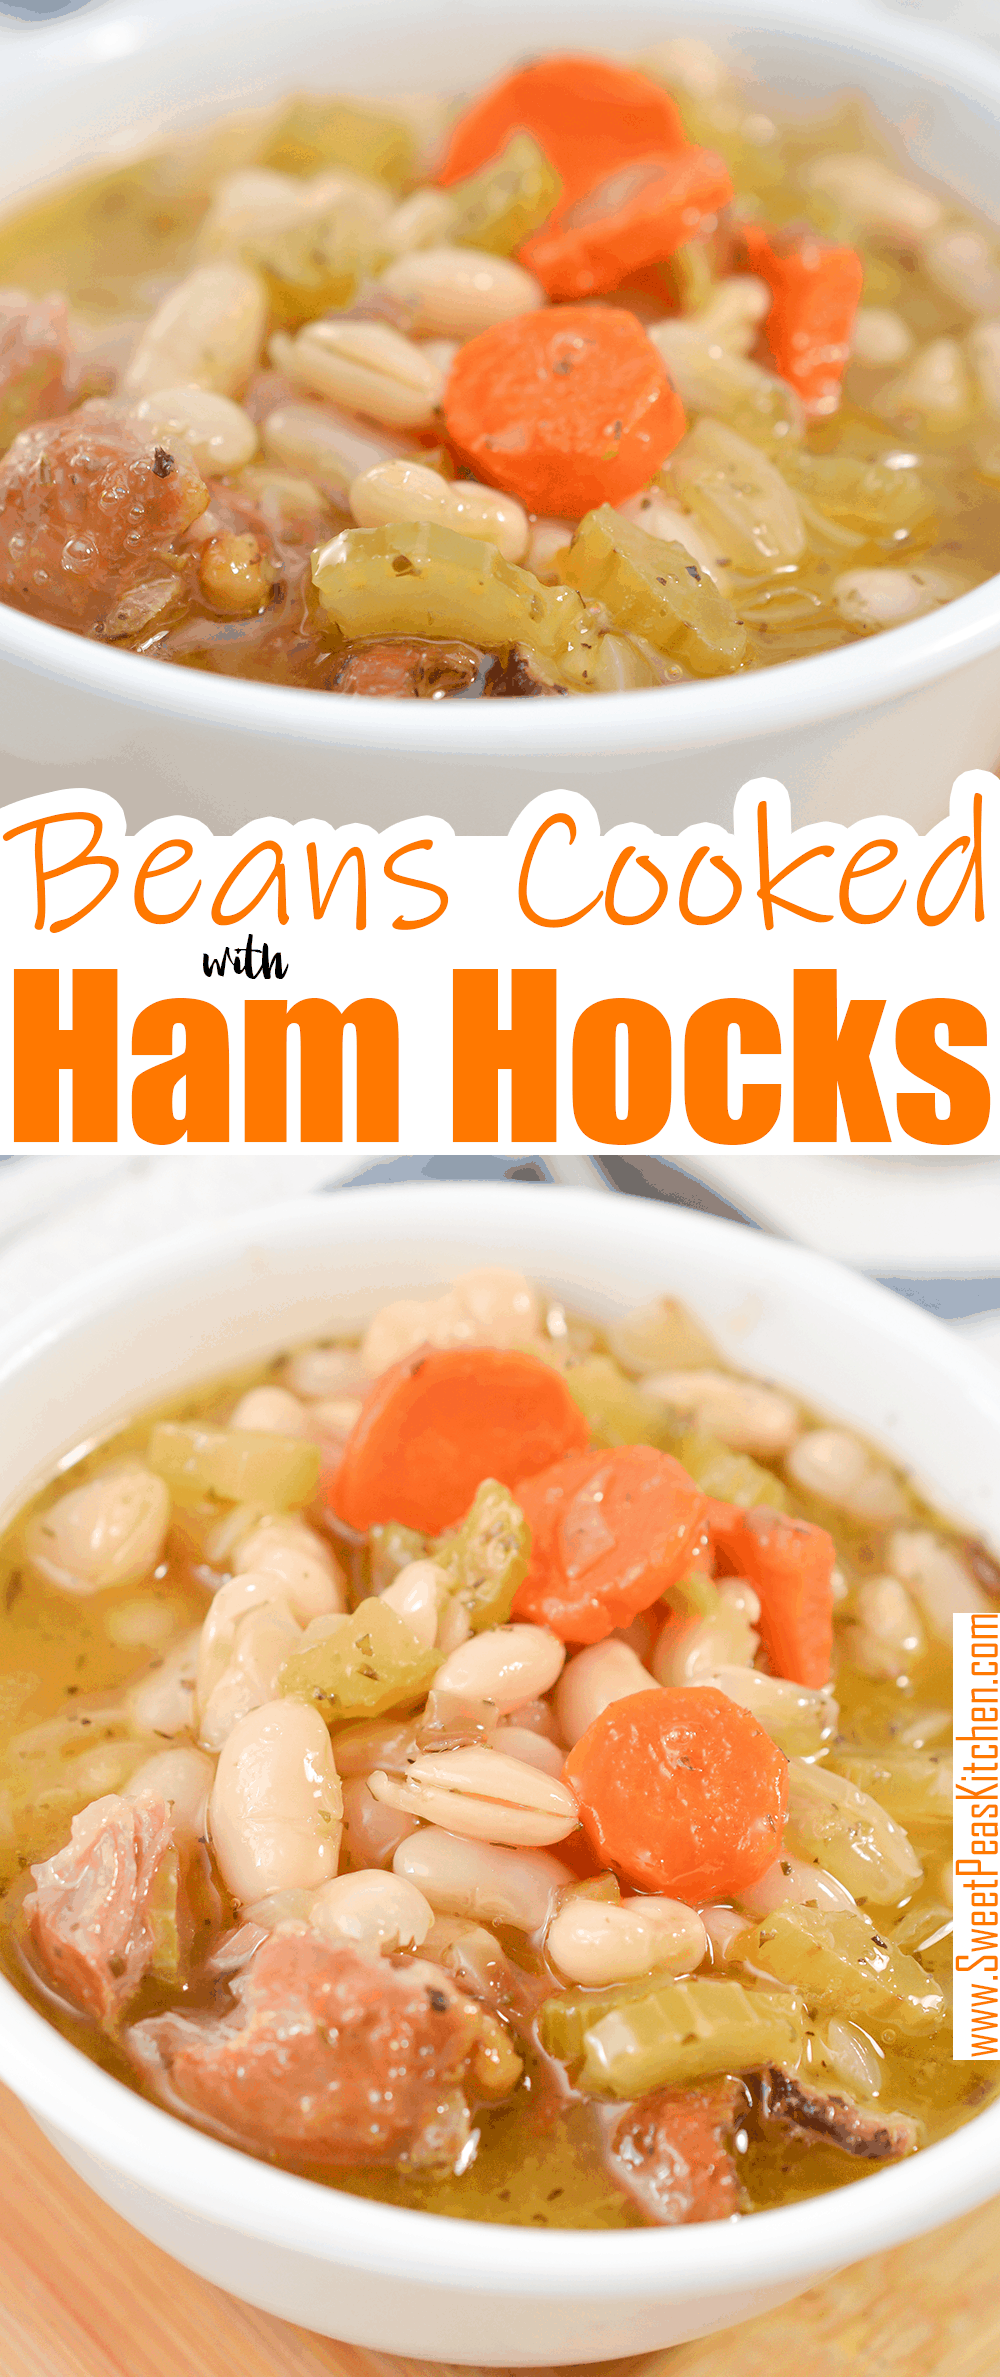 Beans Cooked with Ham Hocks